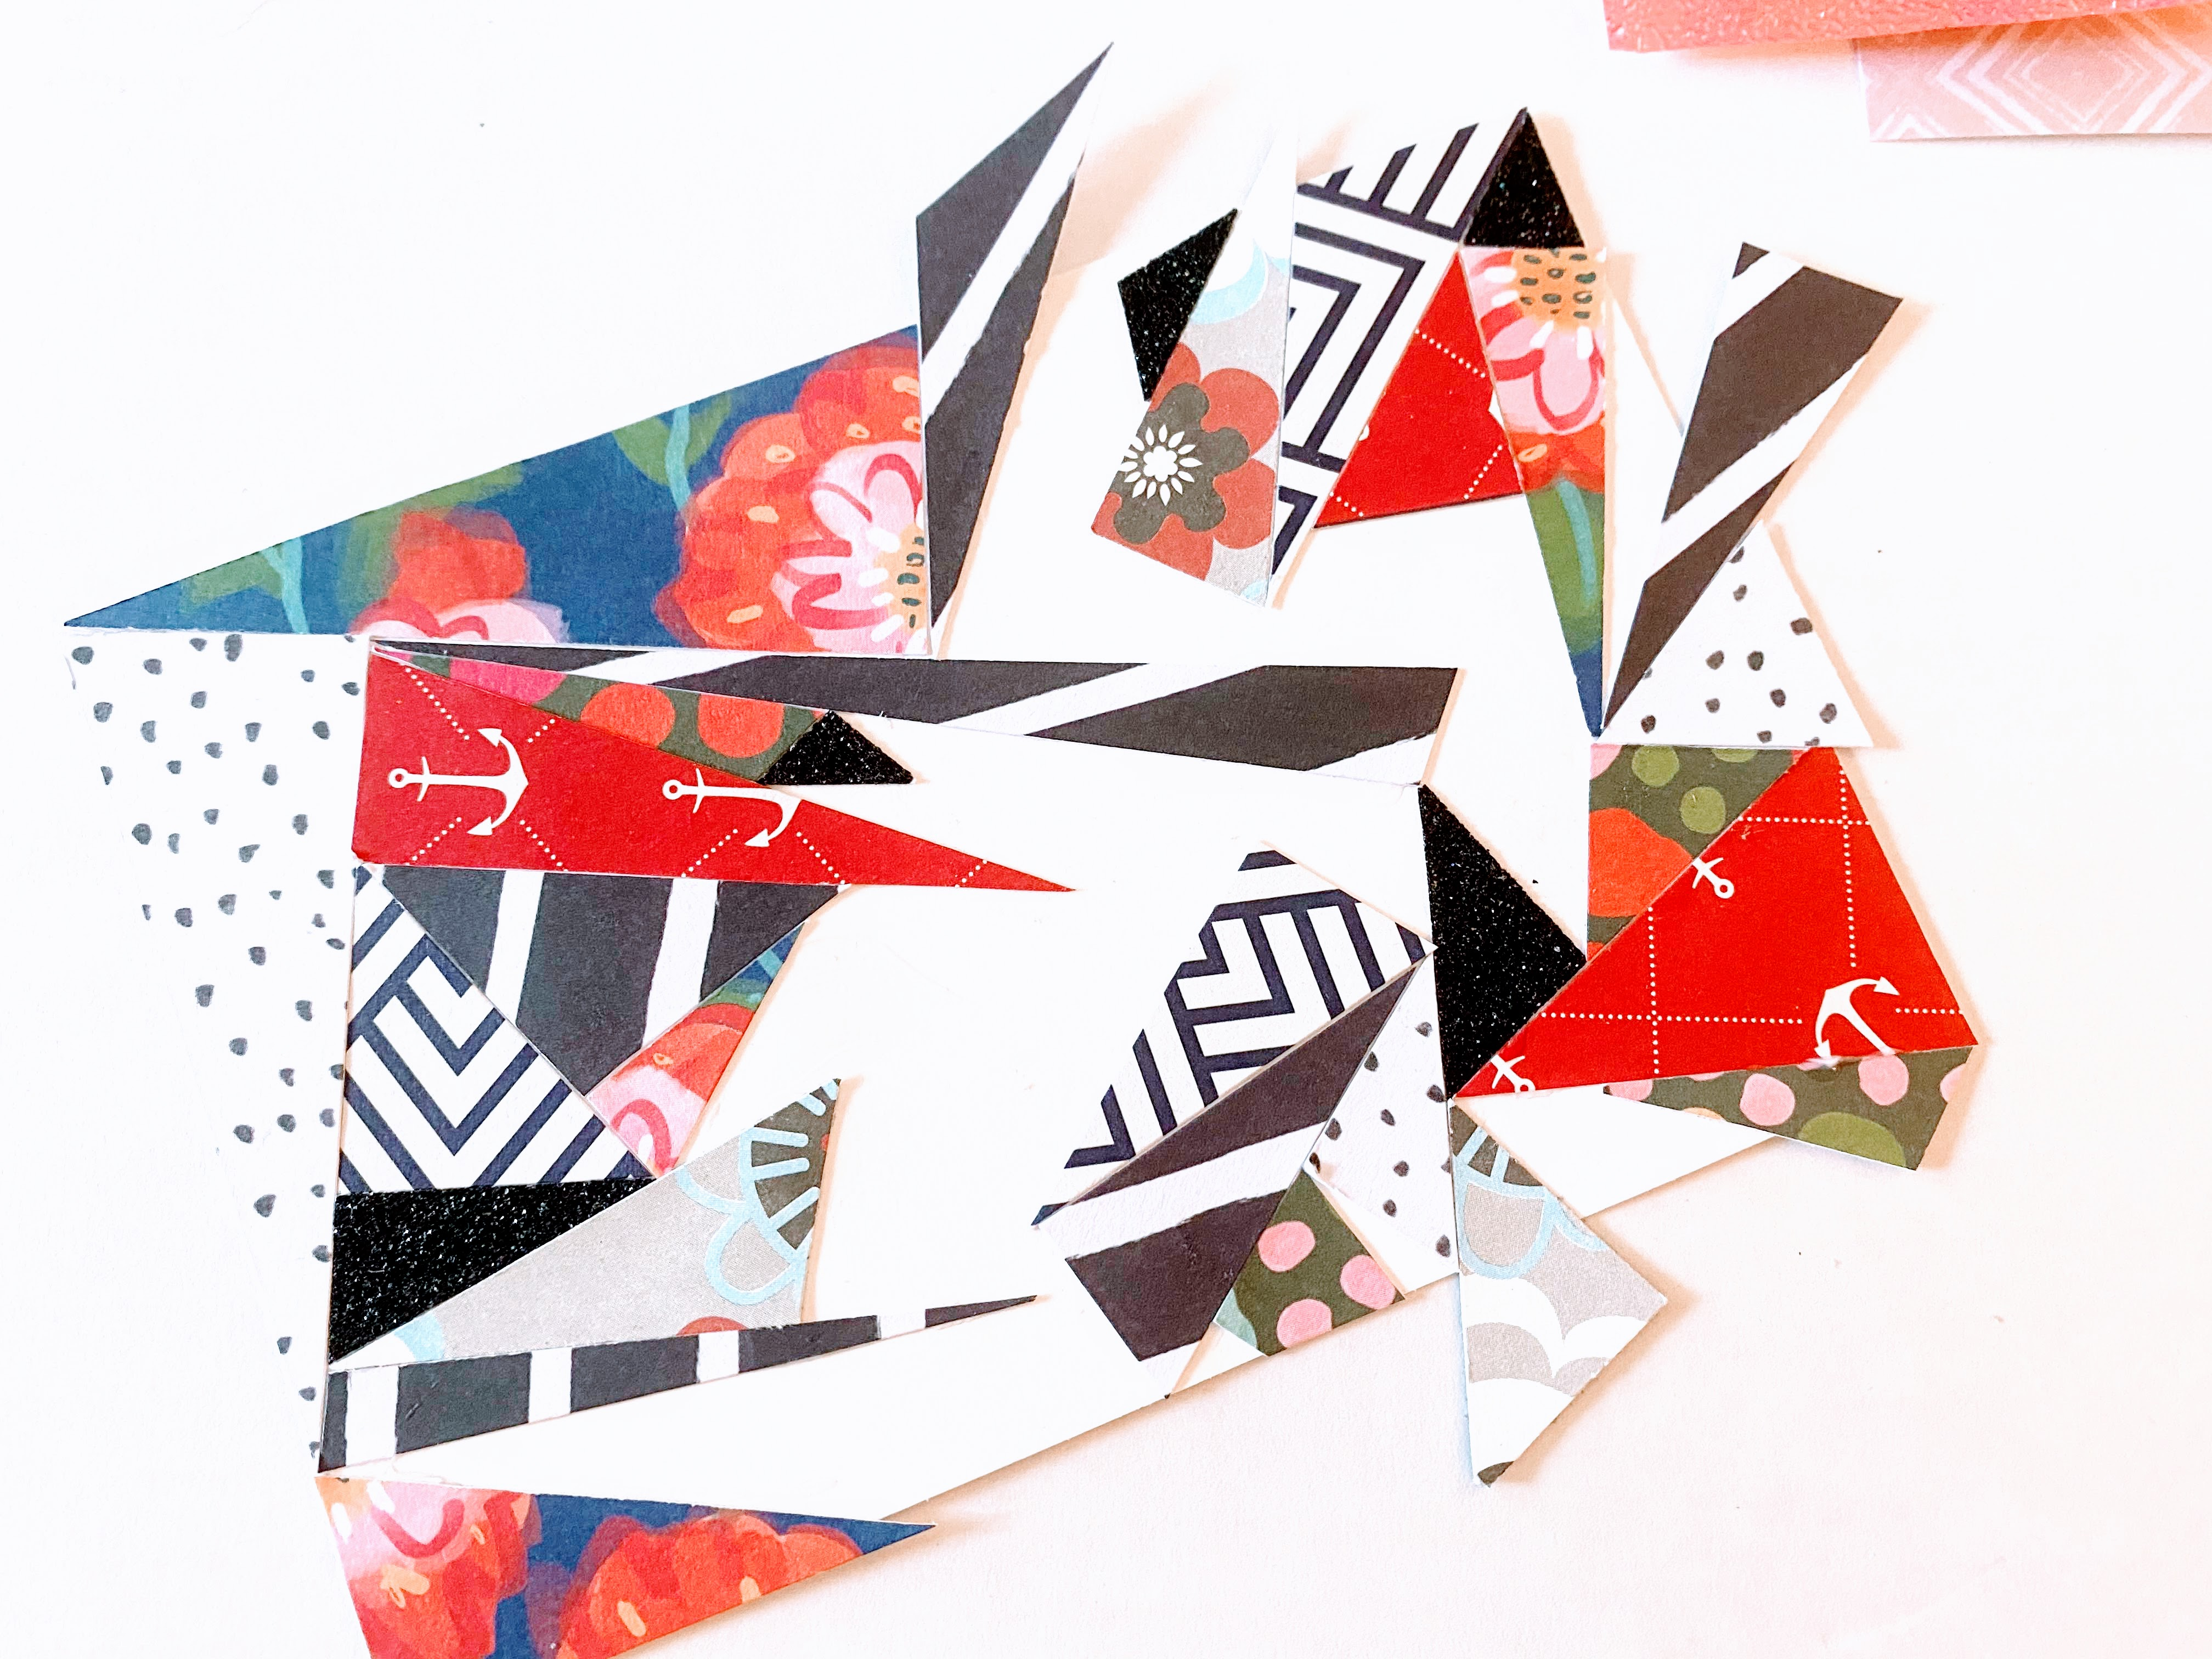 We used various patterned paper and placed it around the card, trying to fit the triangles together.